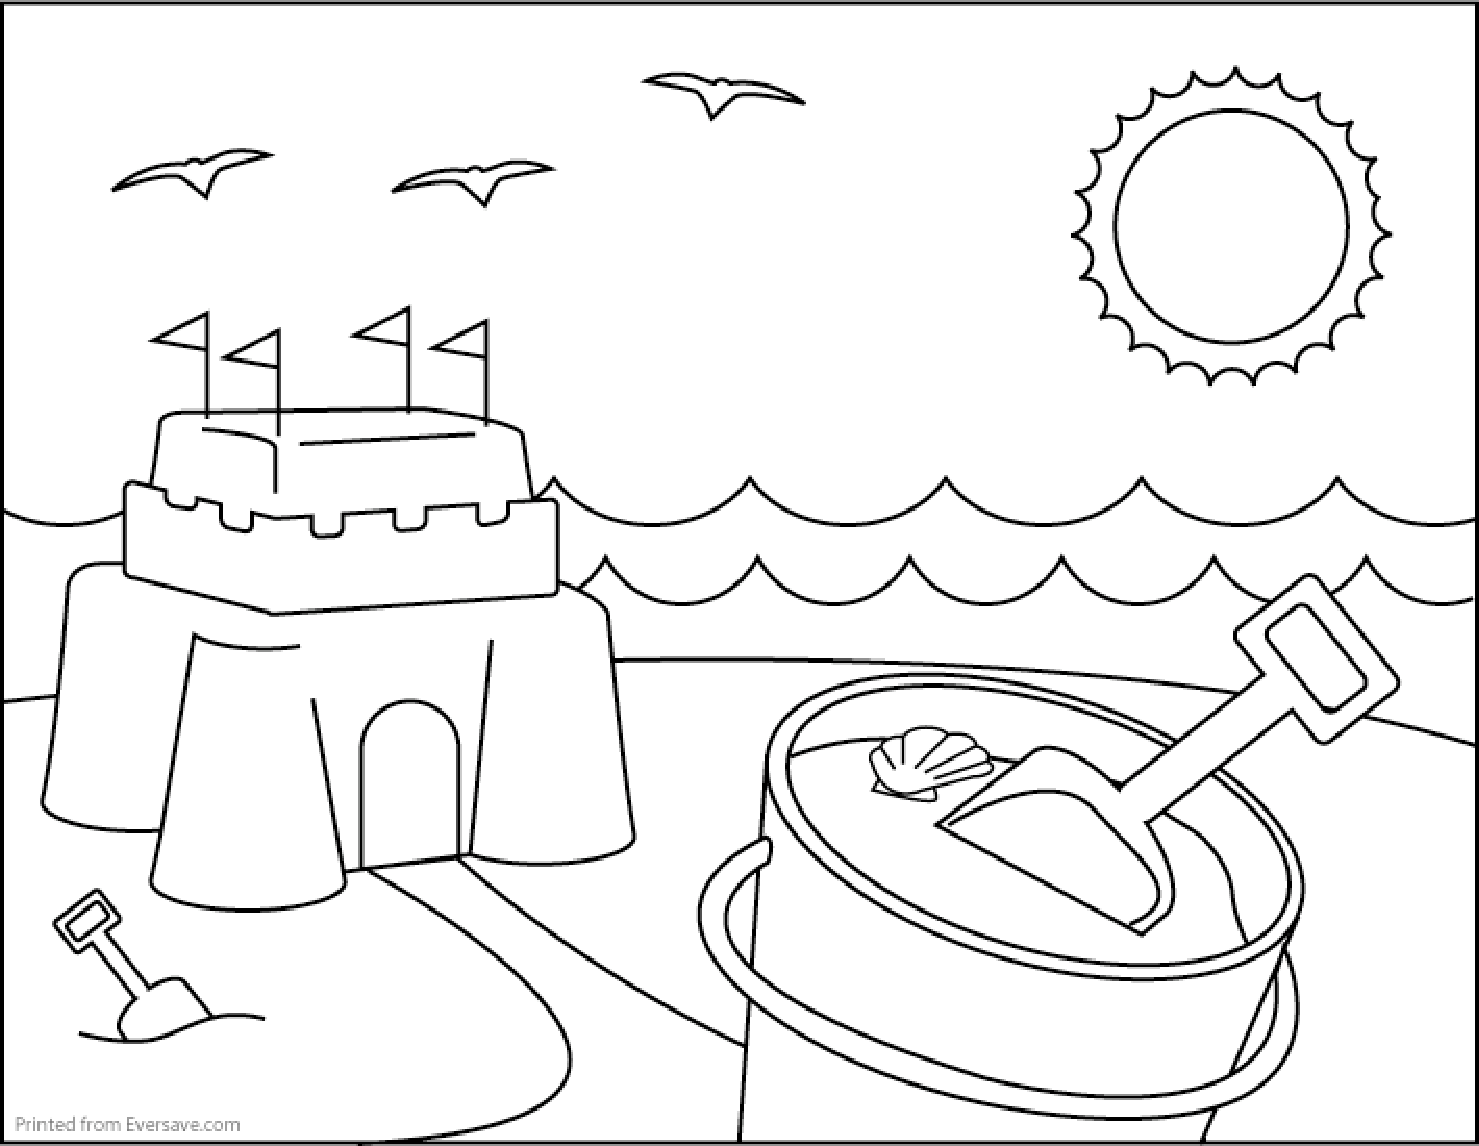 Best Website For Free Coloring Pages : Summer coloring pages to download and print for free